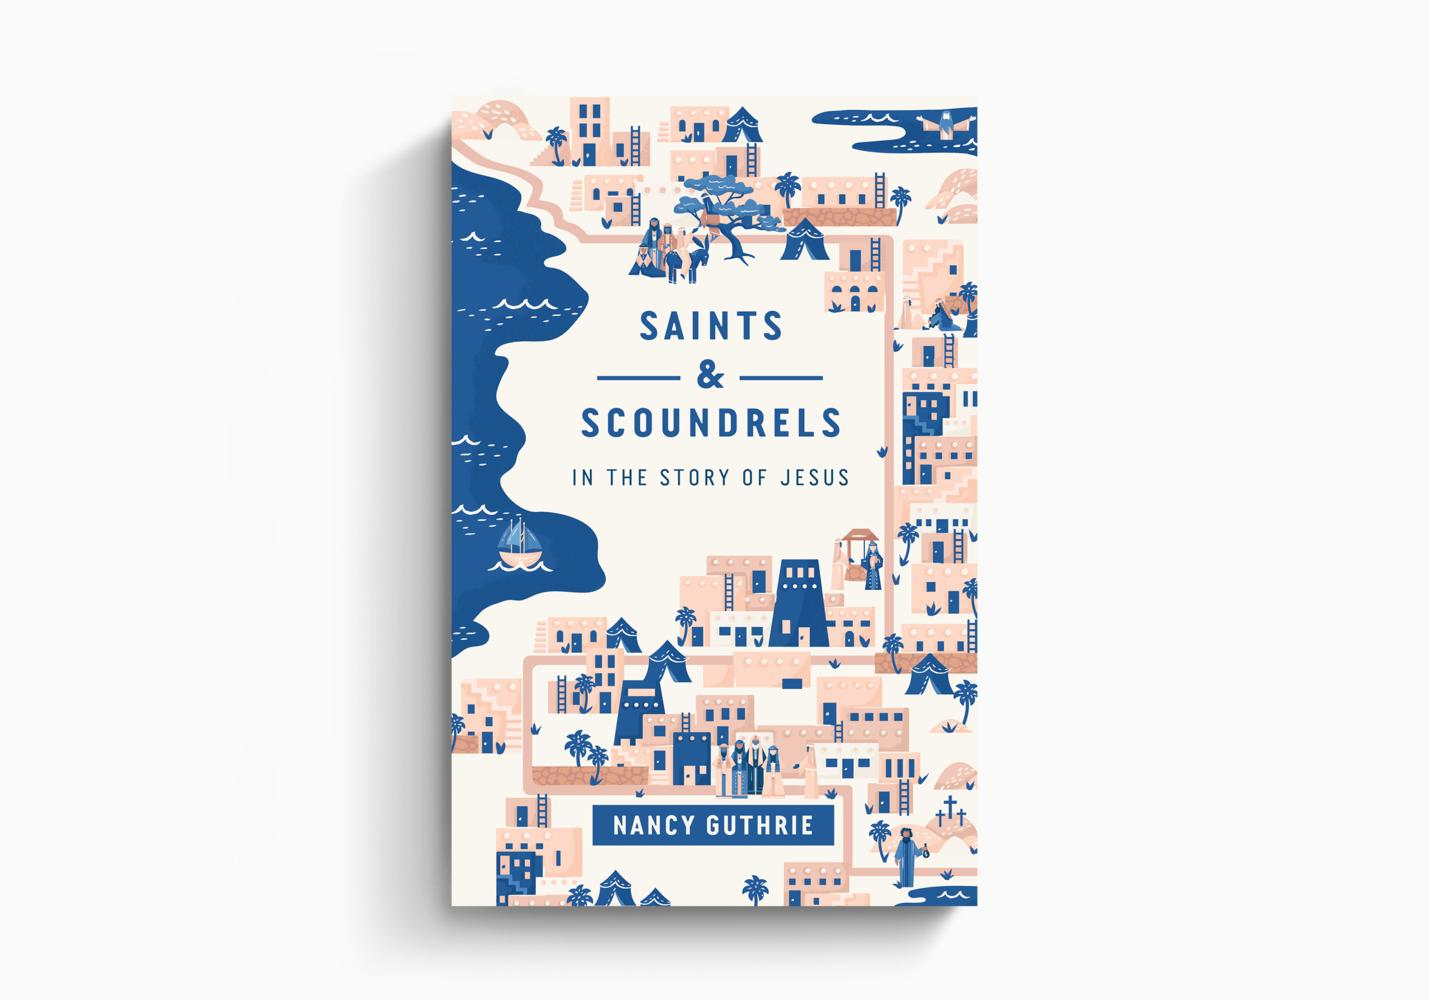 Saints and Scoundrels in the Story of Jesus